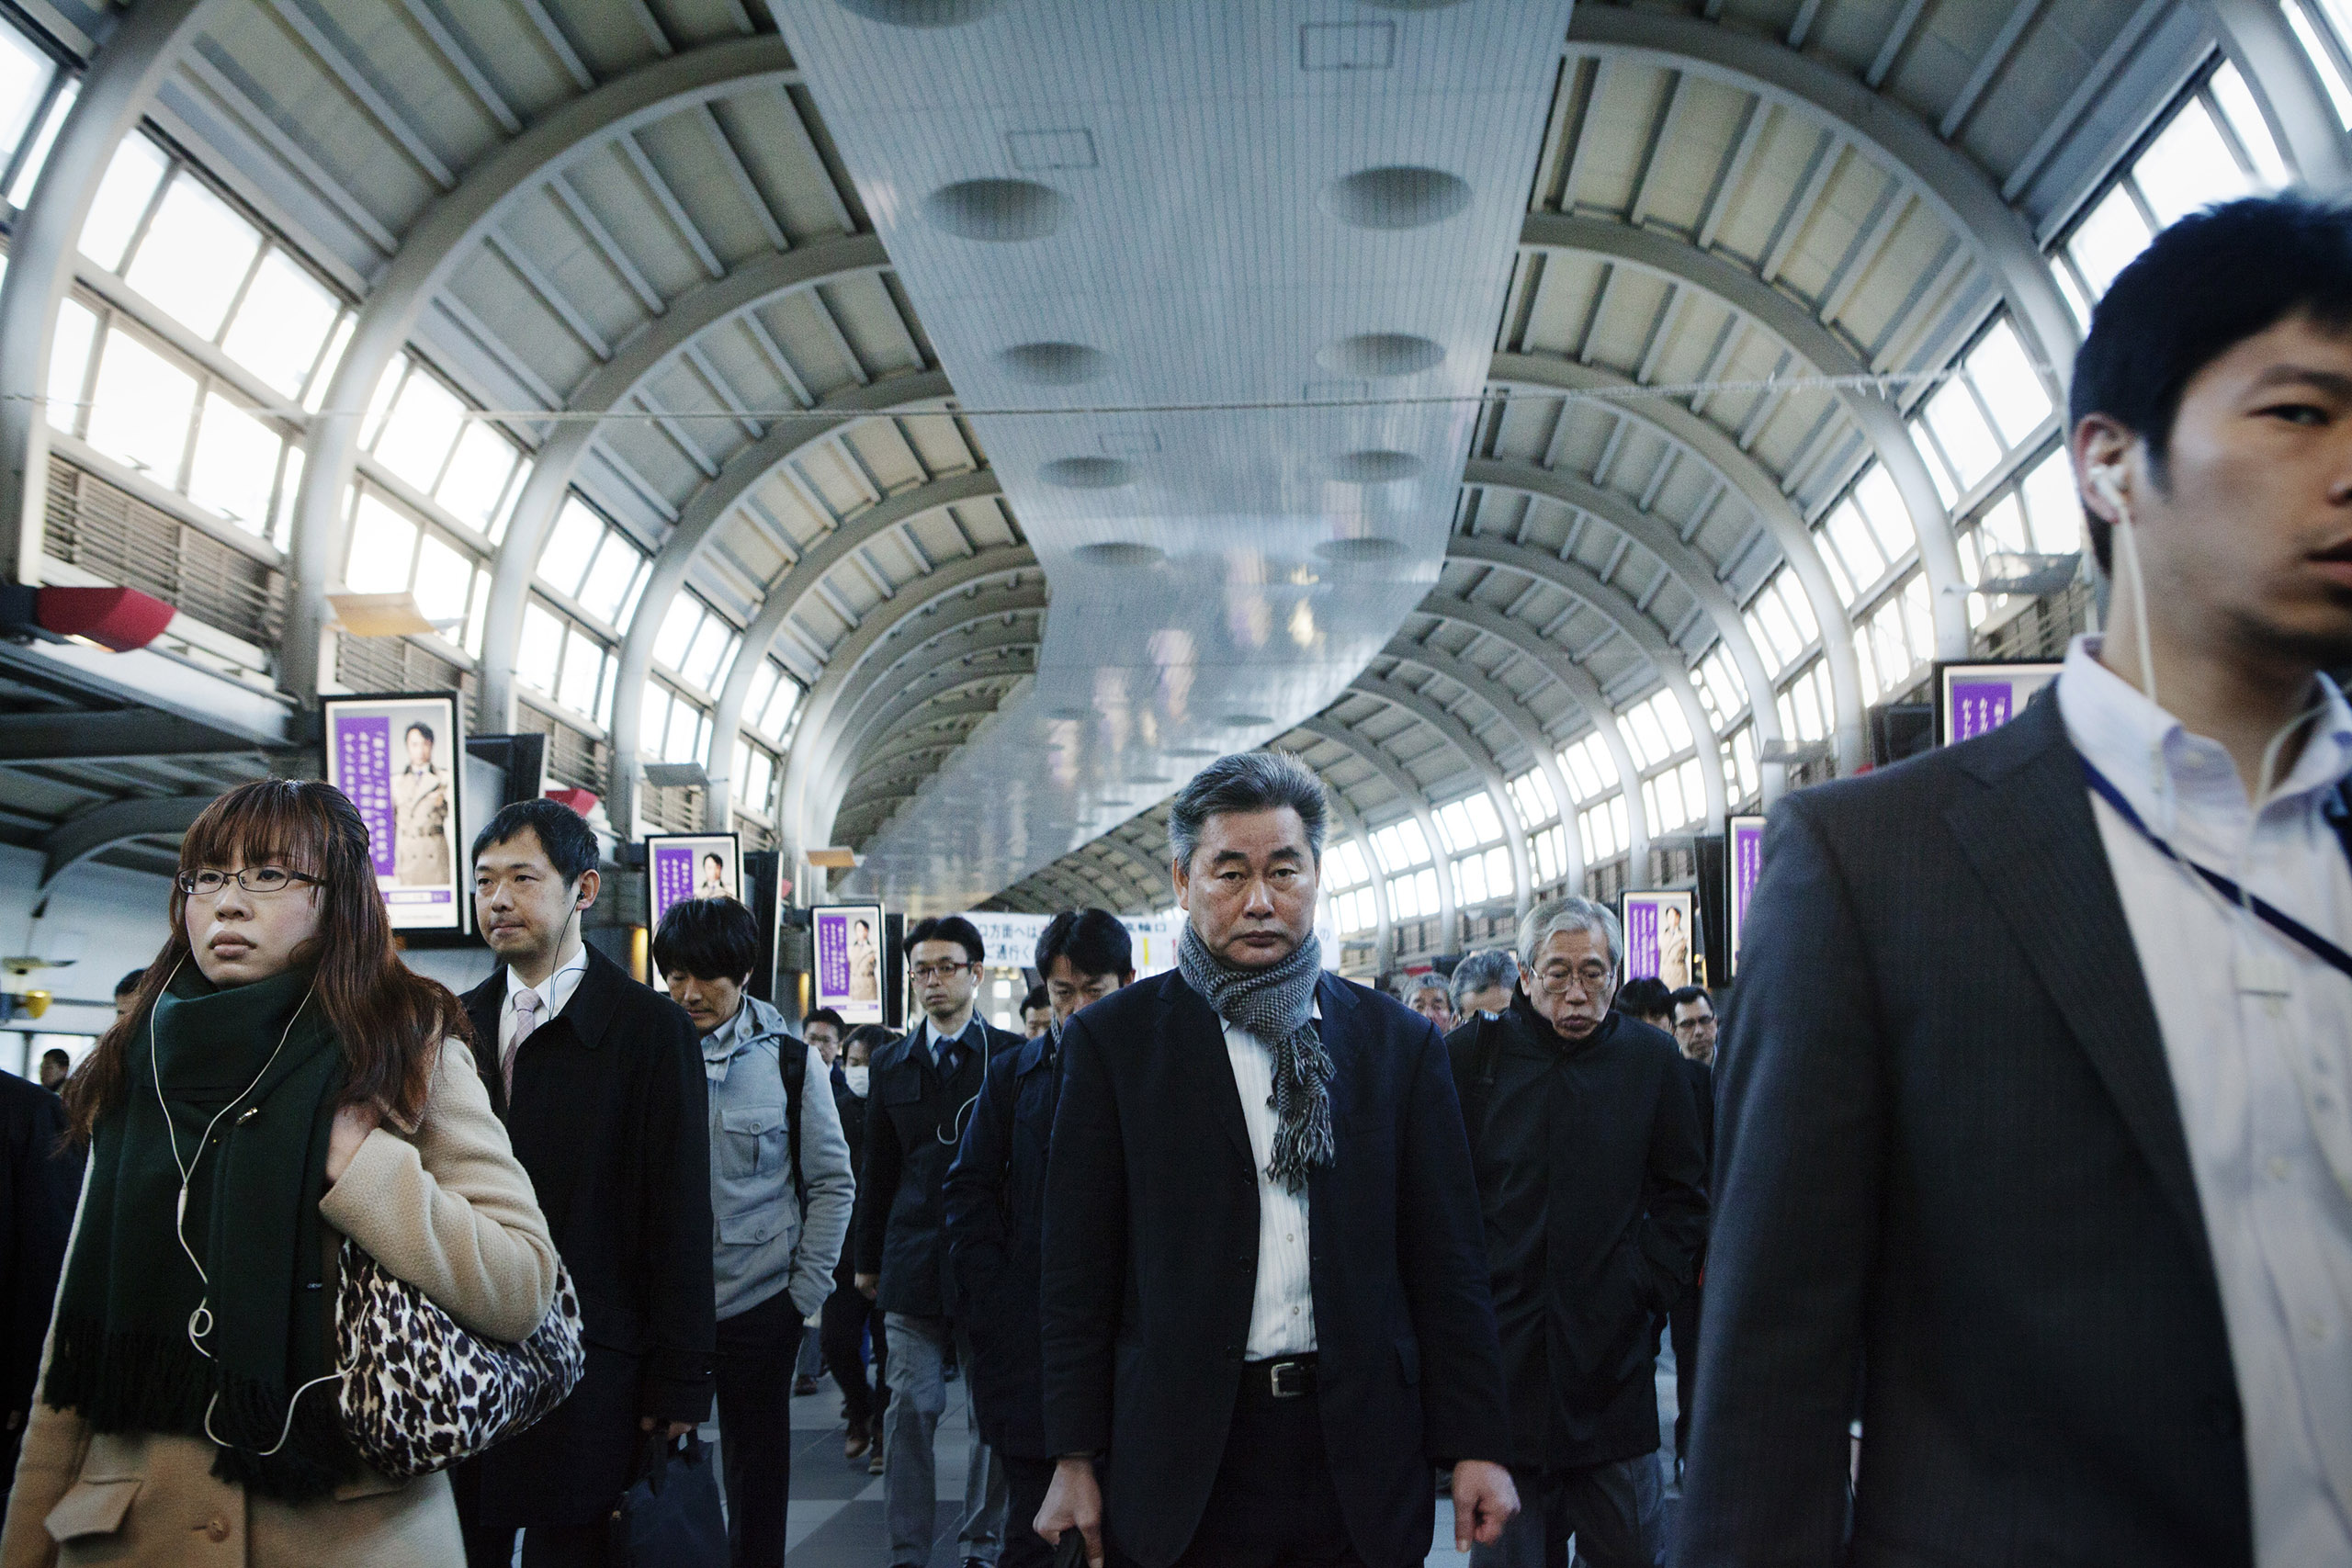 After rising hopes, Japan has slipped into another recession